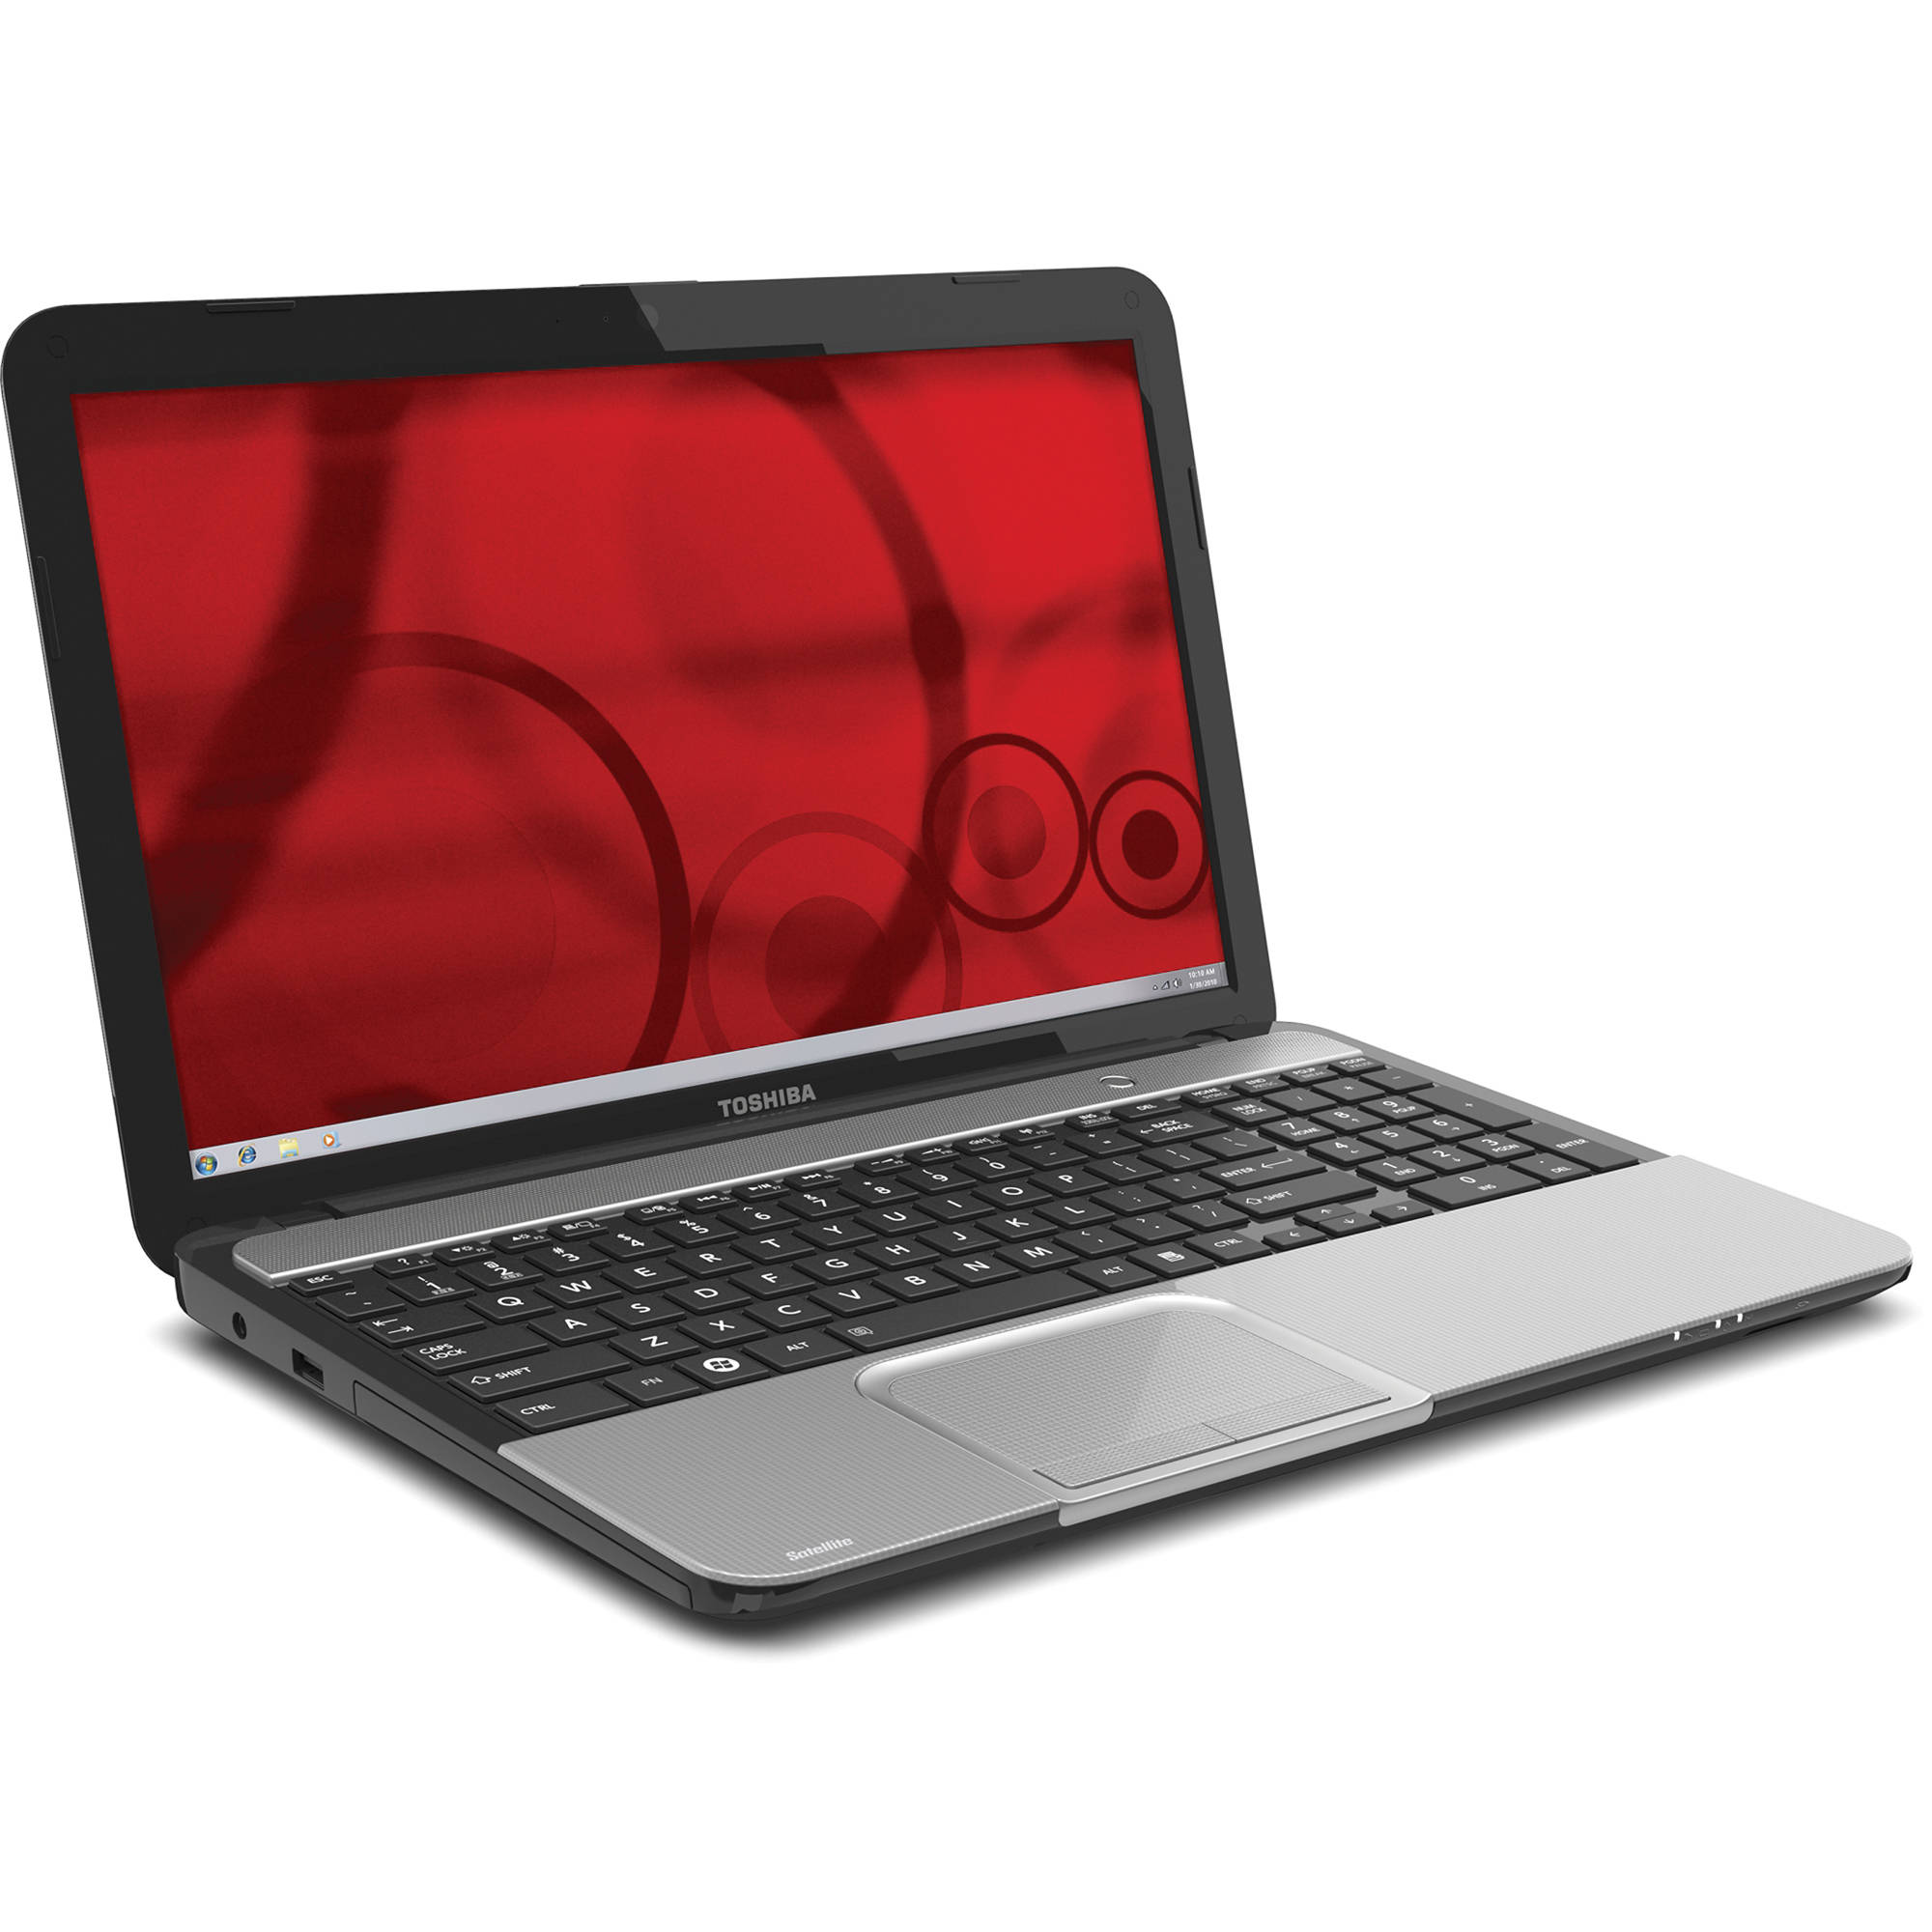 Drivers for Toshiba Satellite L855D Sleep